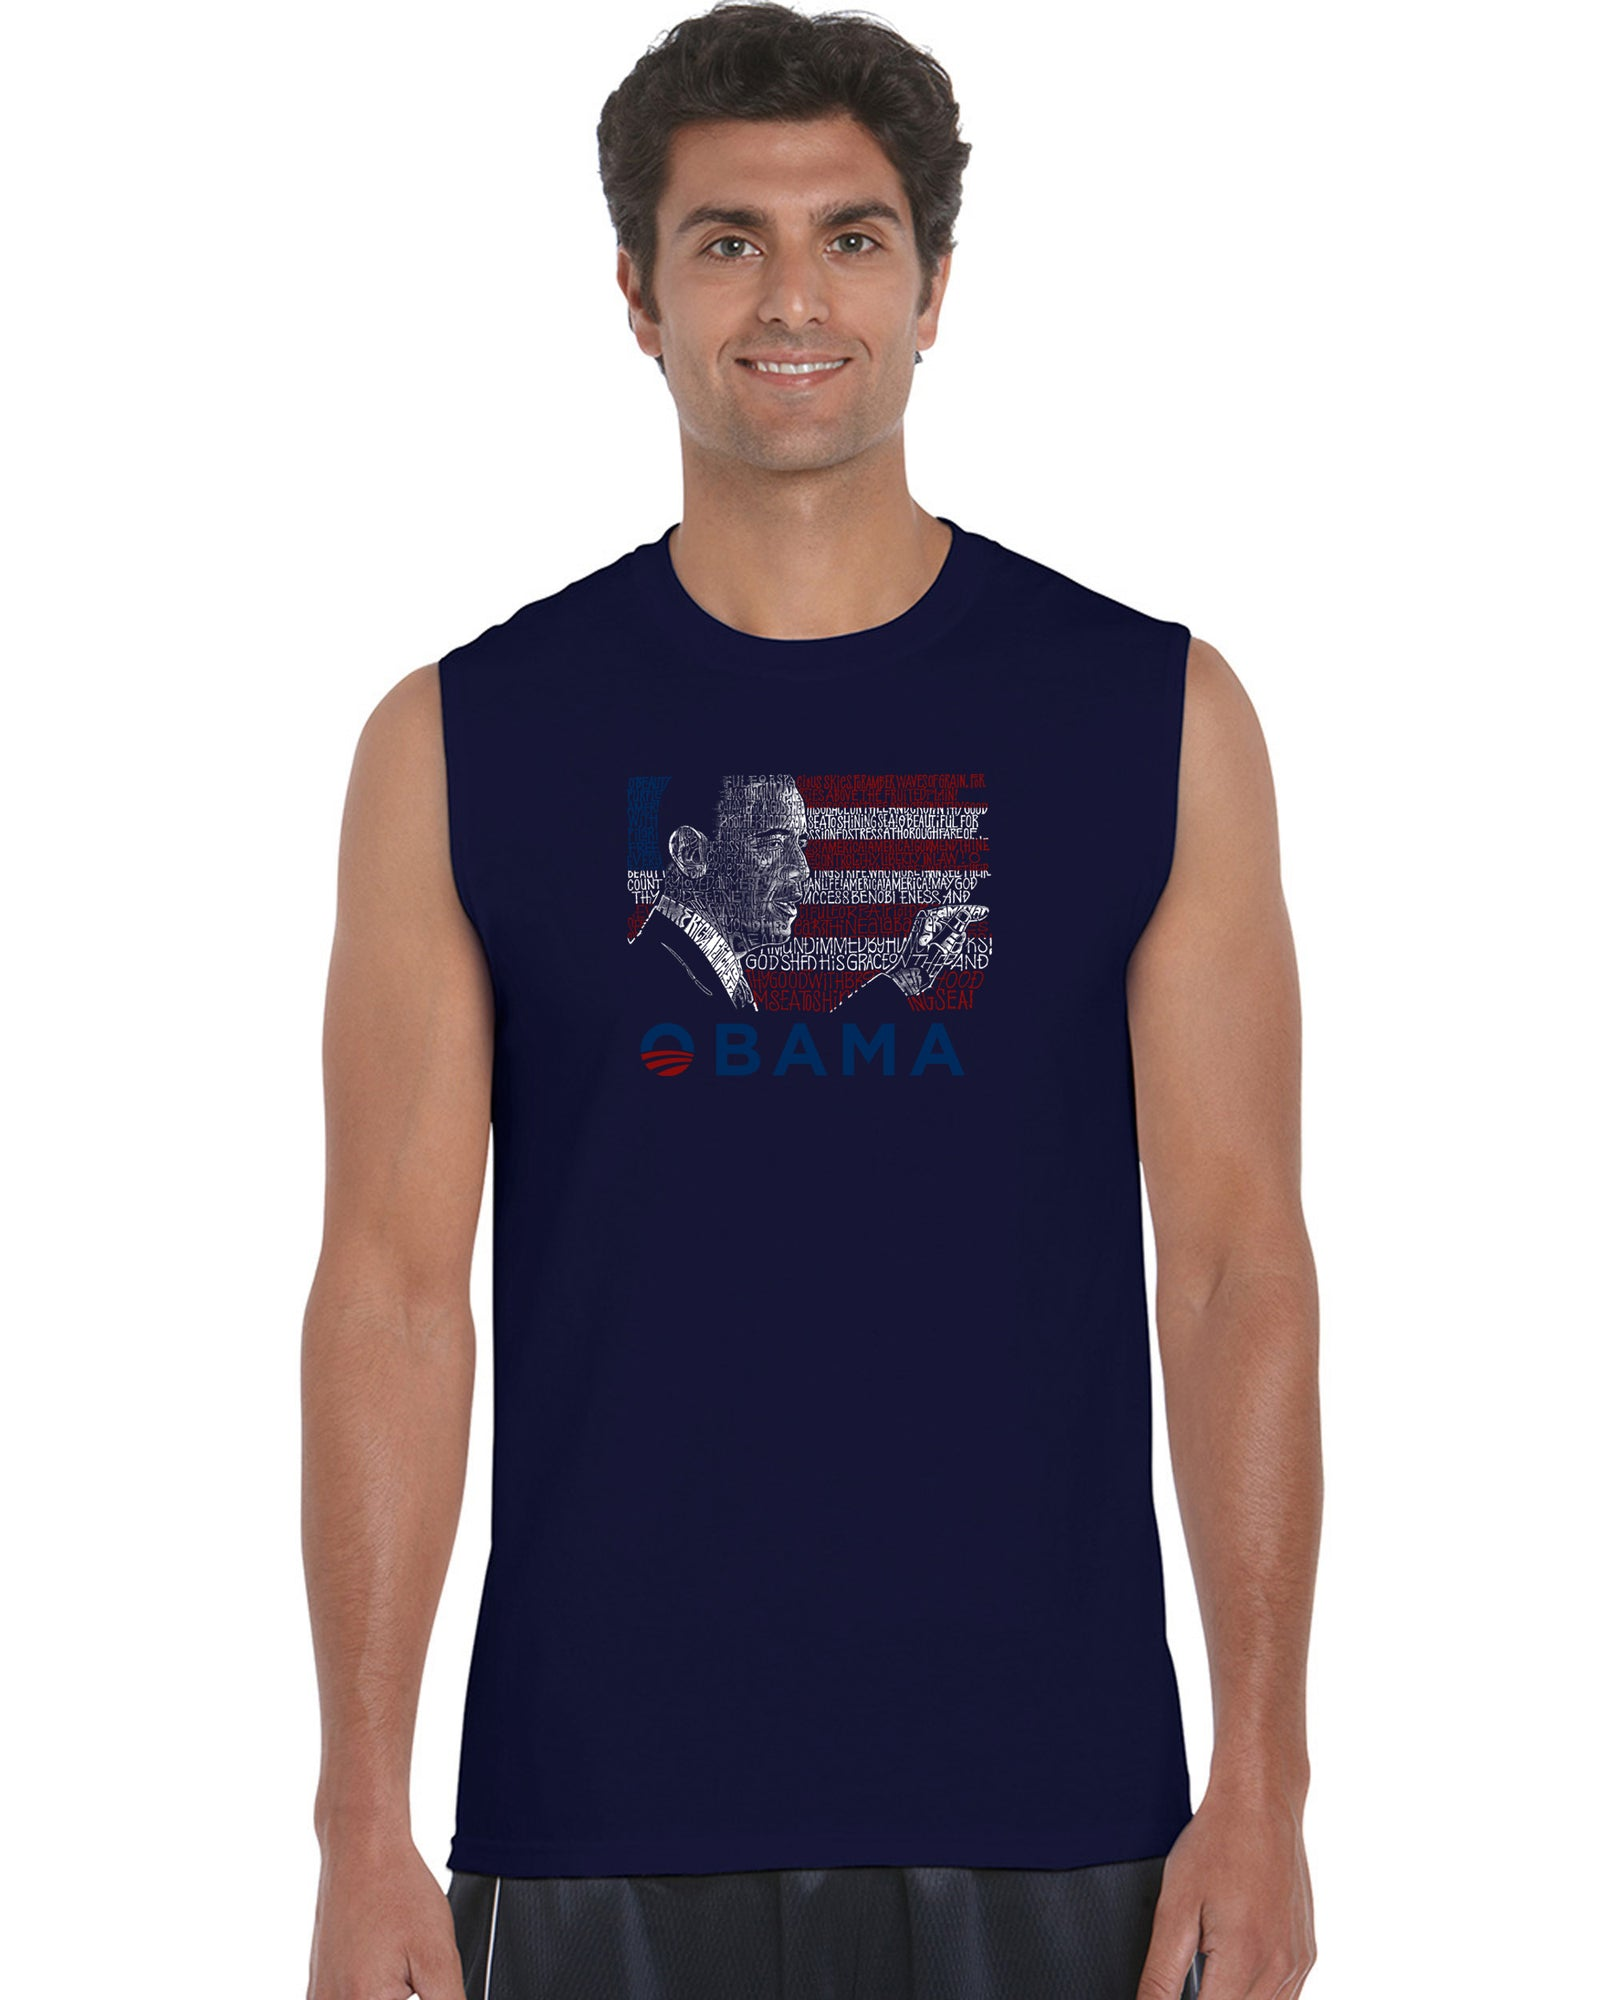 Men's Sleeveless T-shirt - BARACK OBAMA - ALL LYRICS TO AMERICA THE BEAUTIFUL